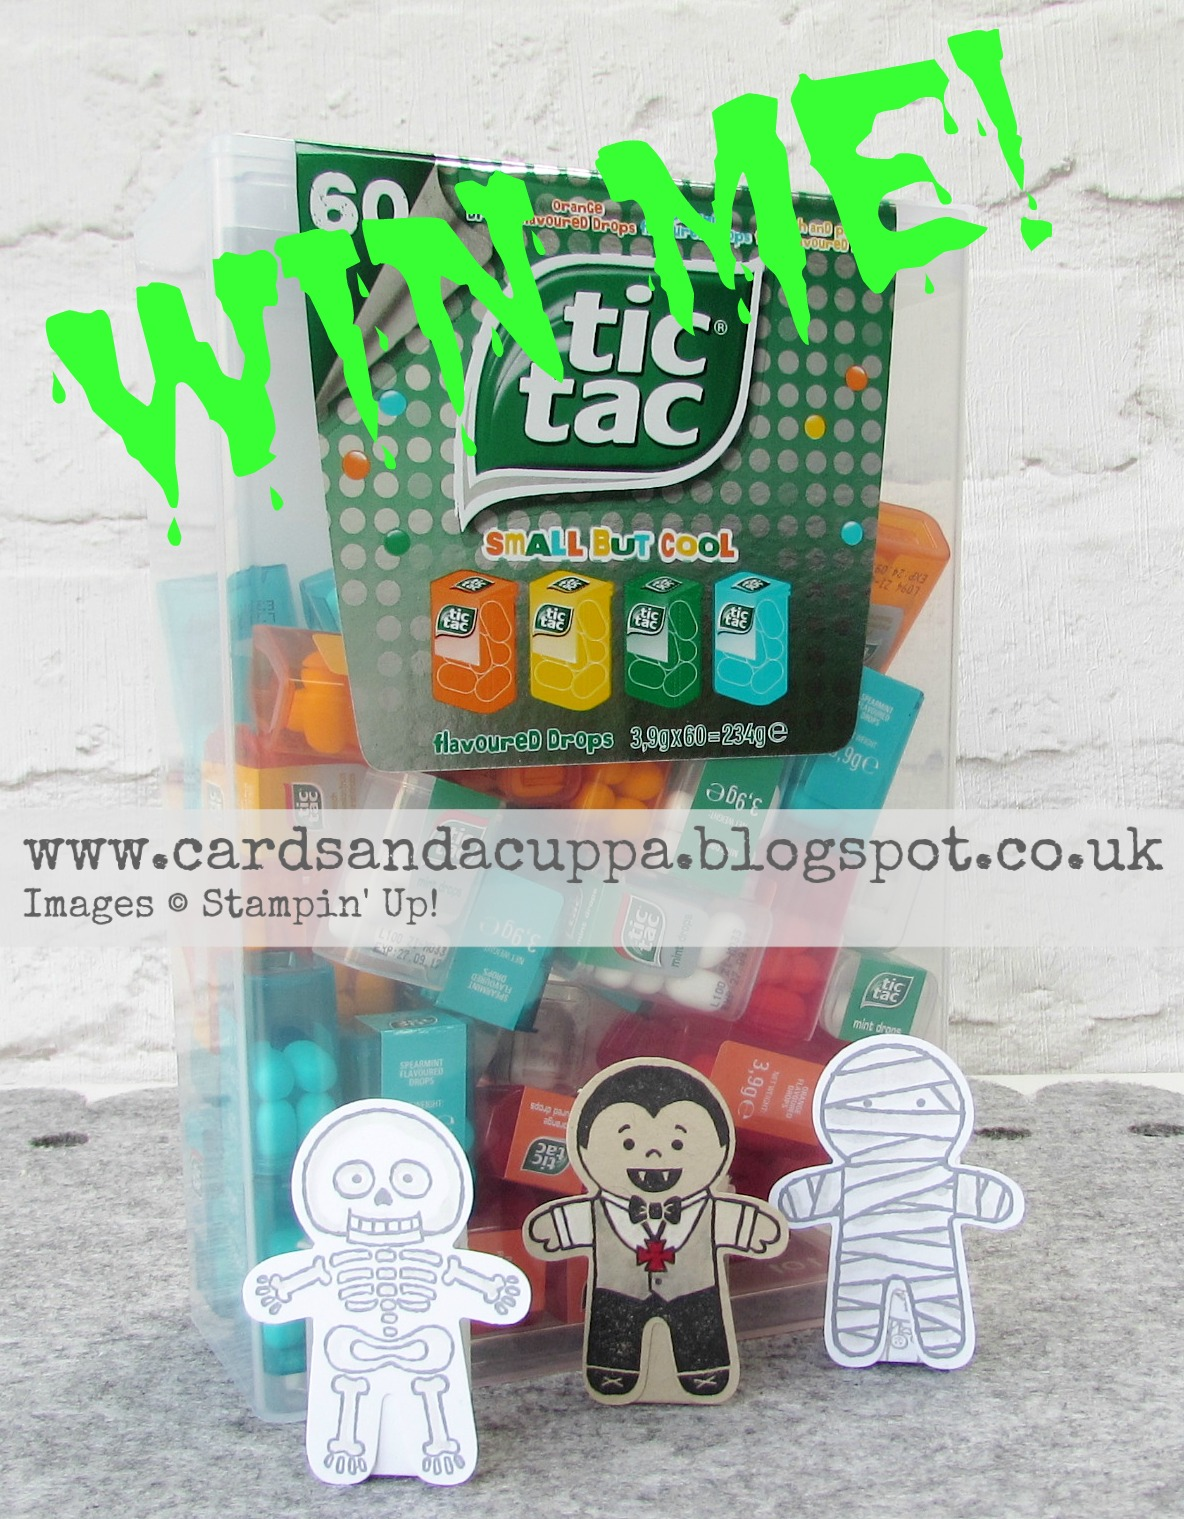 WIN your own box of mini tic tacs to decorate!